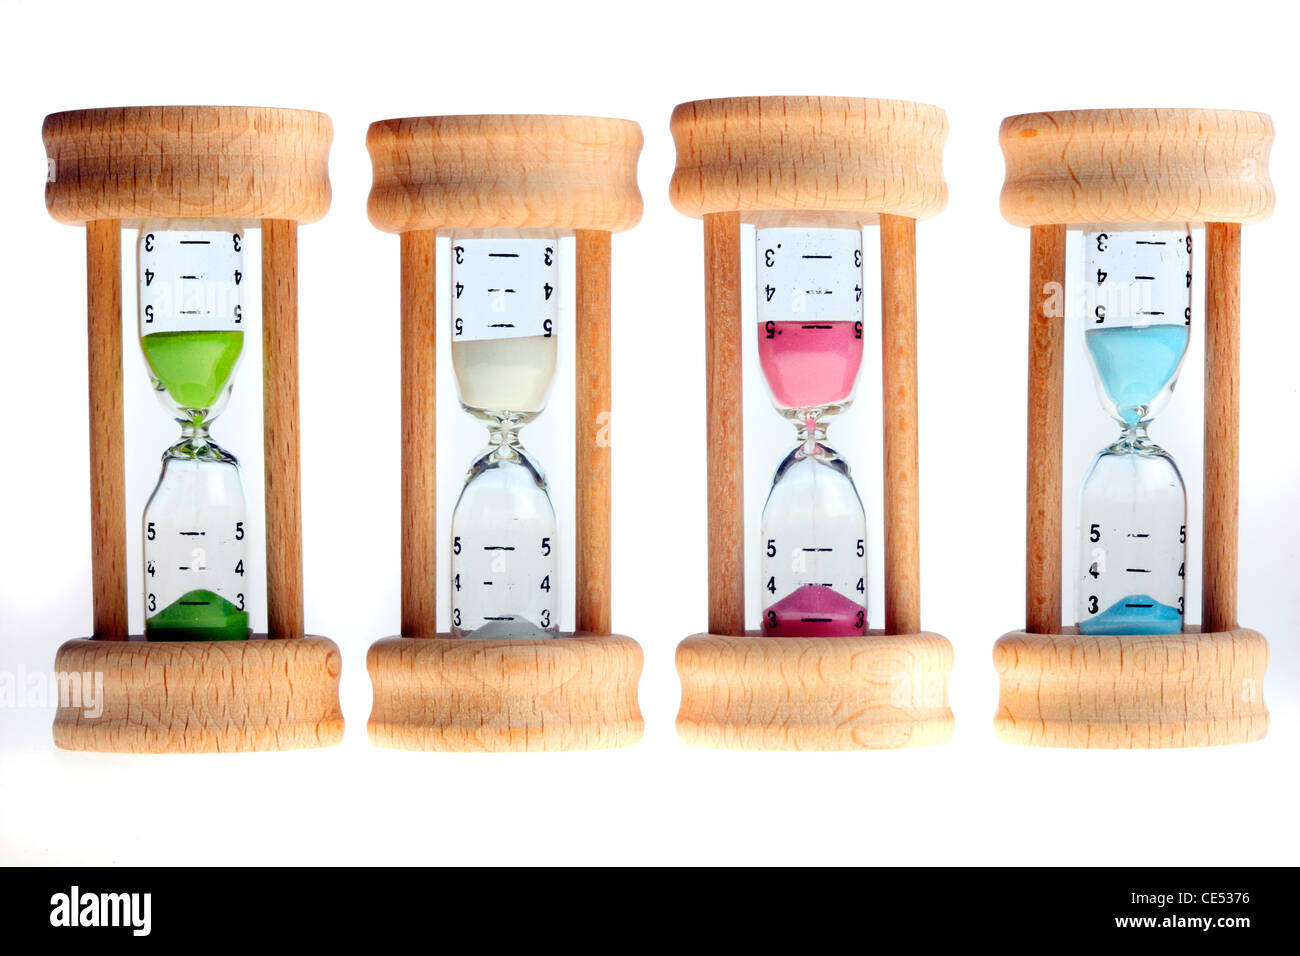 Hourglass, analog timing through slowly running sand. - Stock Image